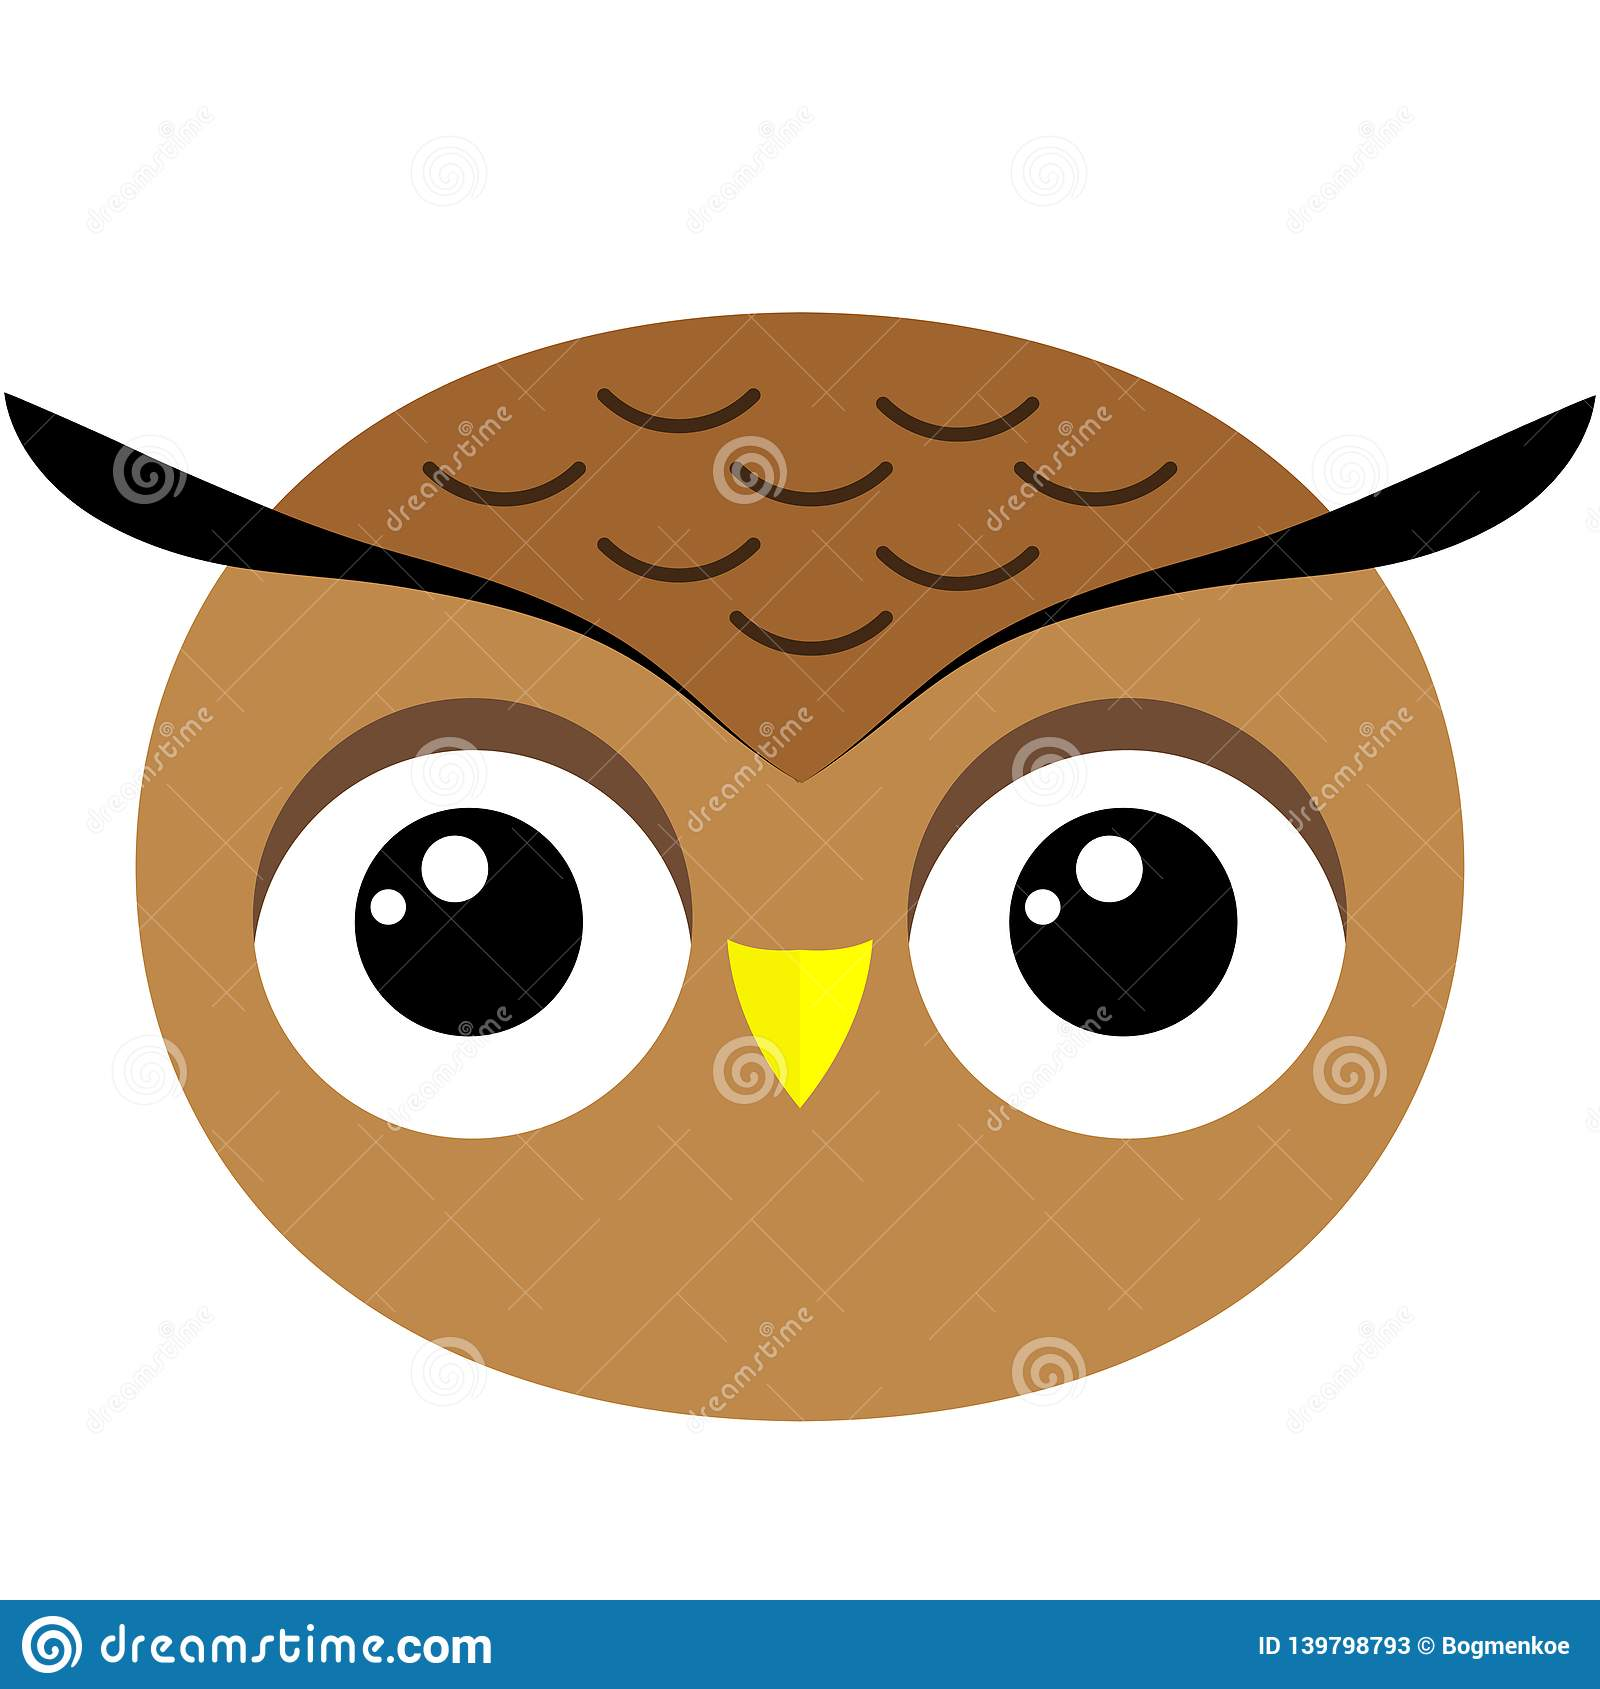 Owl`s Face Cute Simple Image Stock Illustration ...